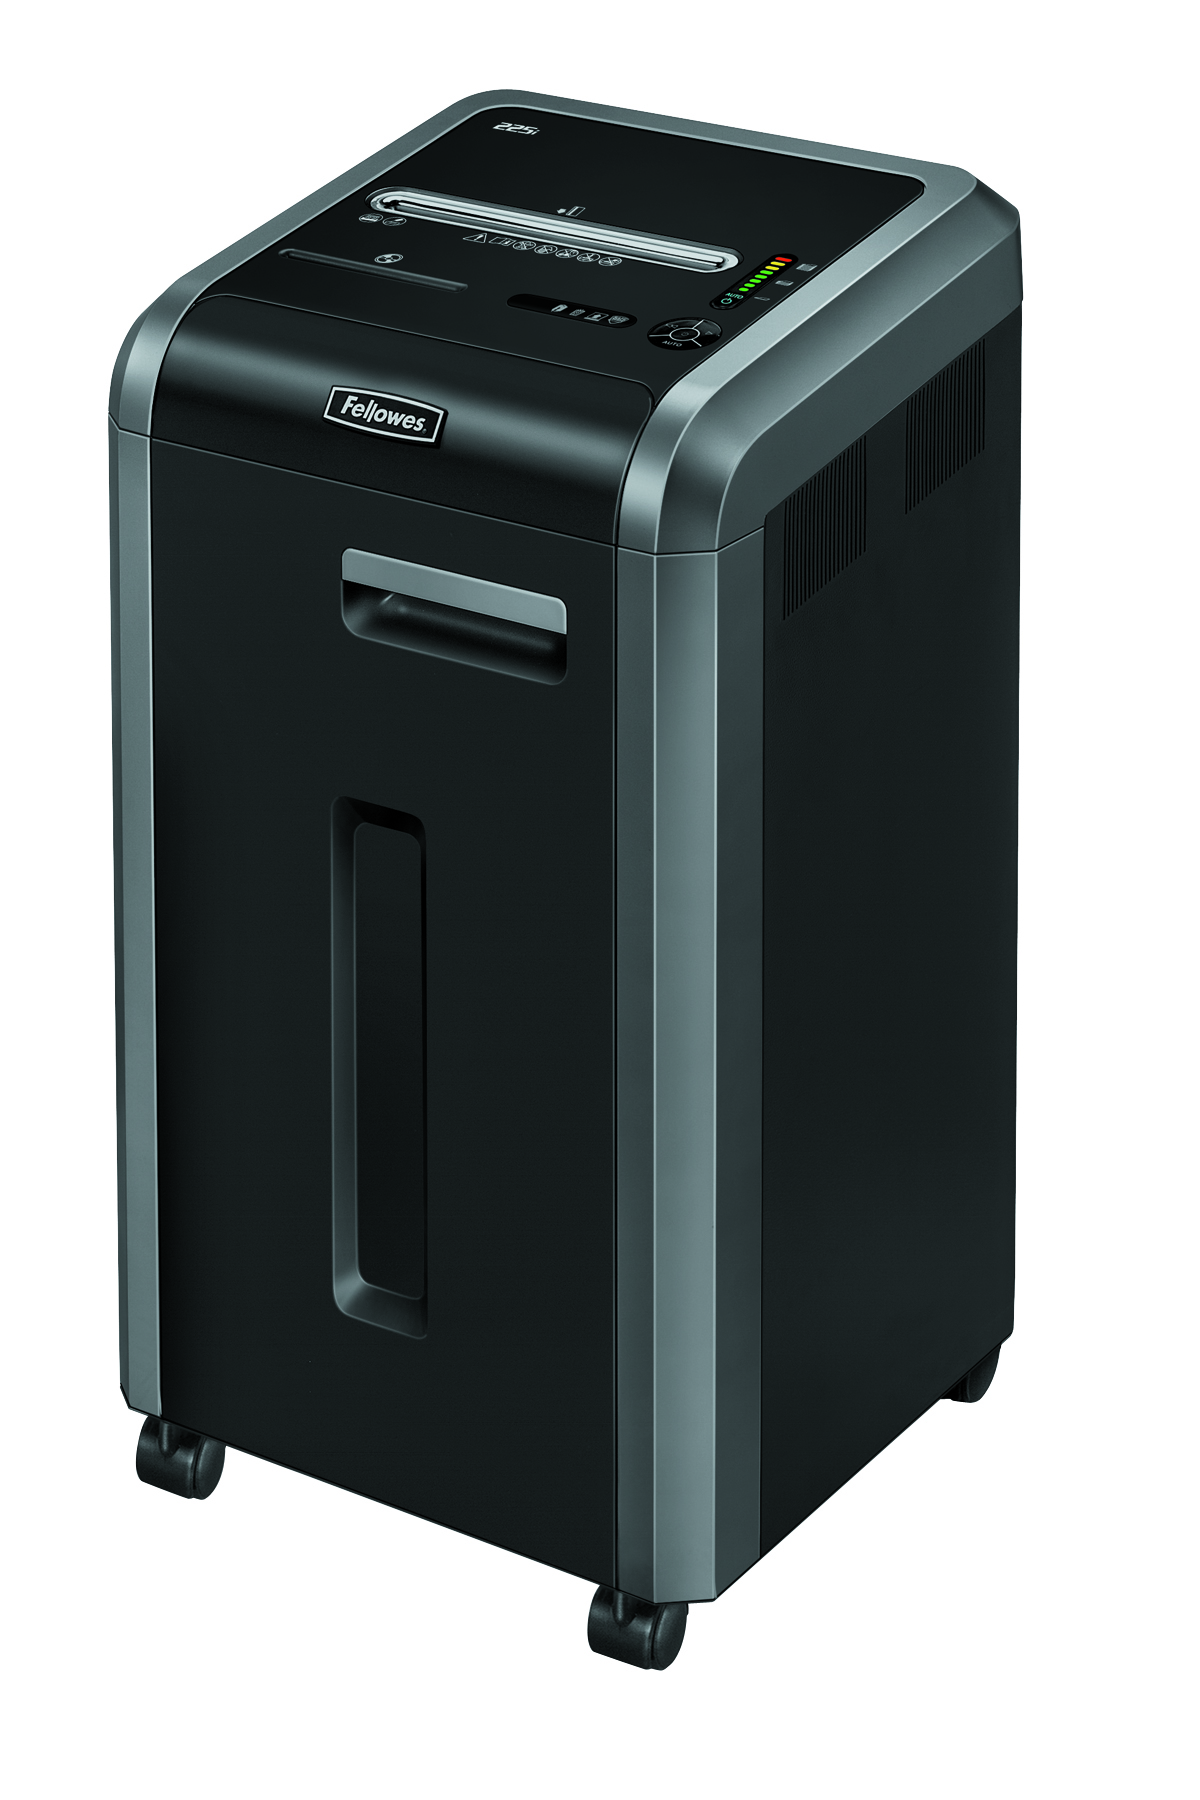 Destruidora de Papel Fellowes 225i, 22 Fls, 60L, CD/DVDs com Rodas